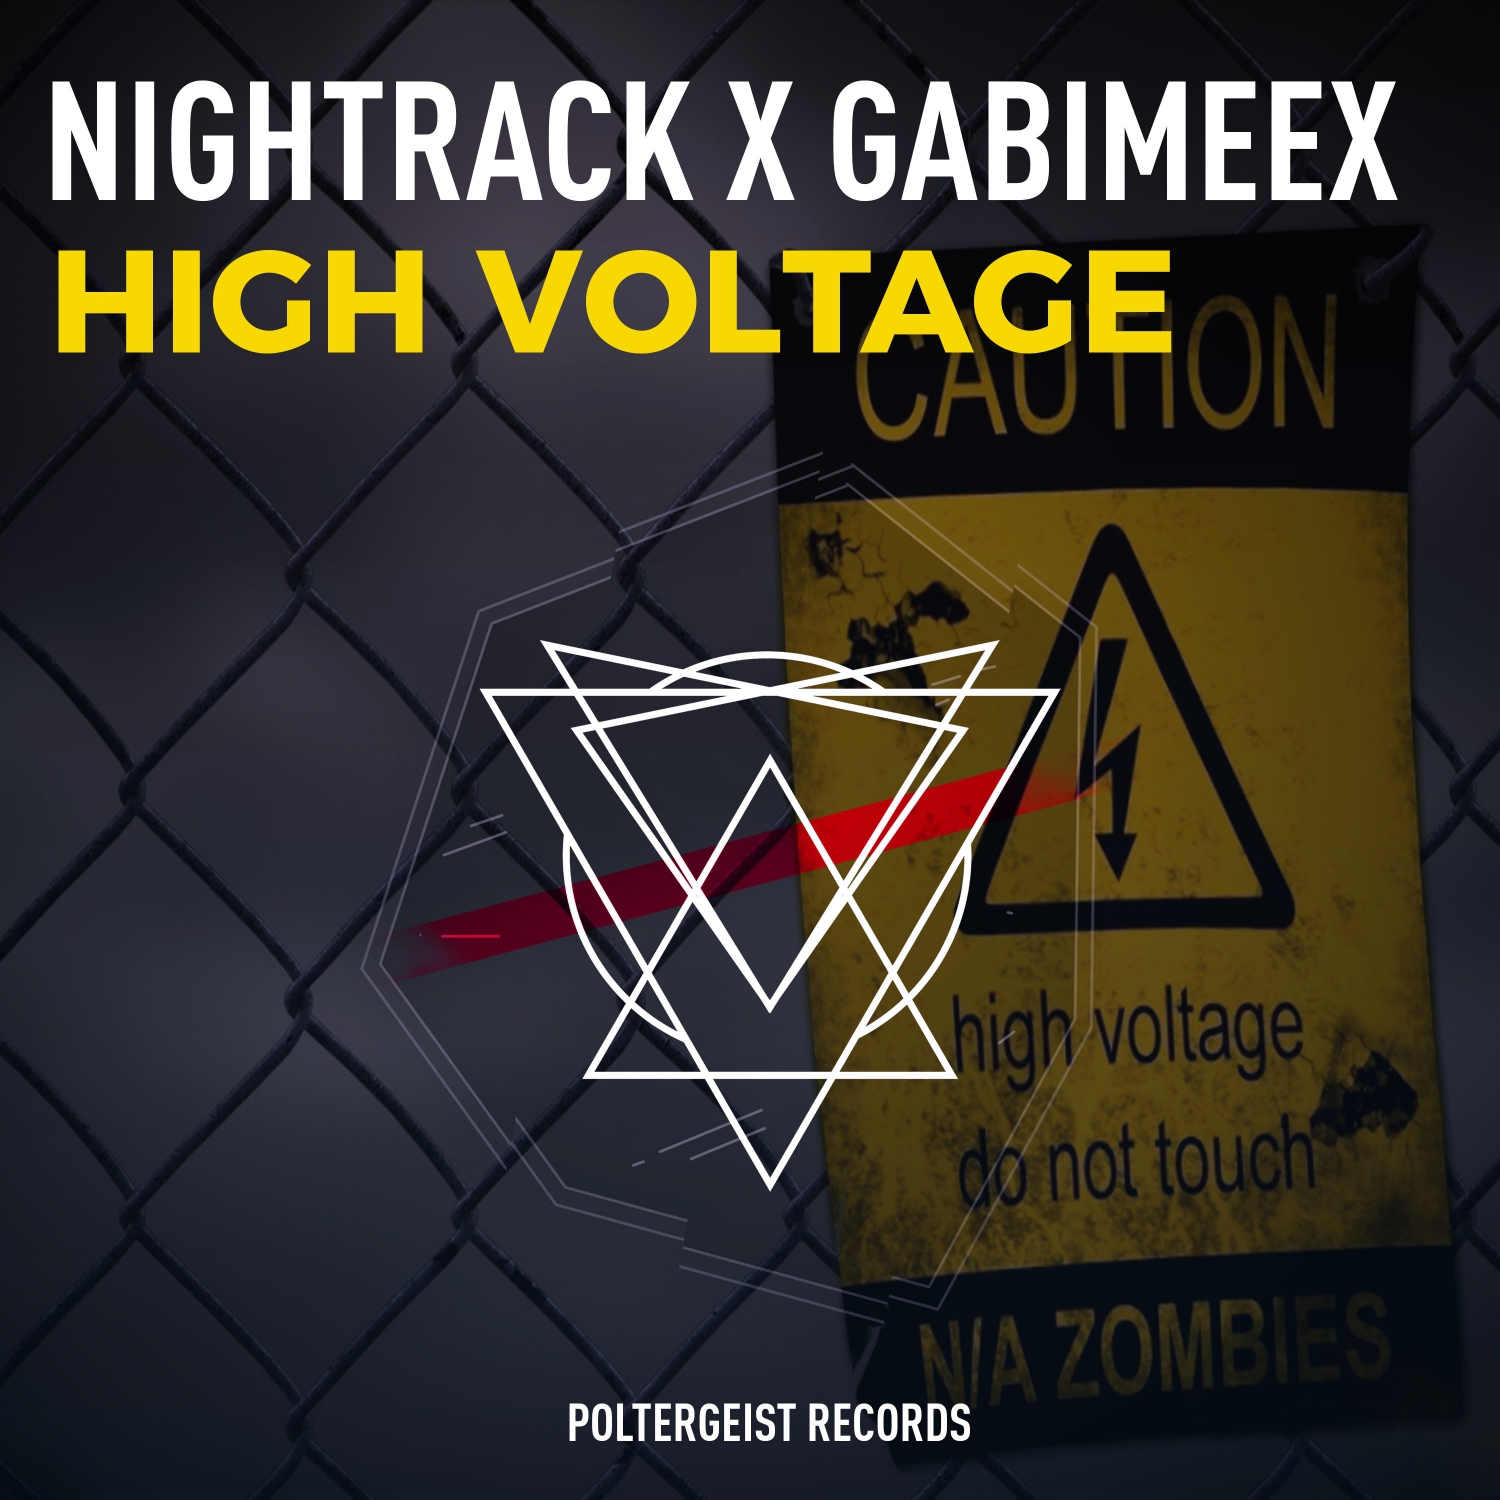 Nightrack & Gabimeex - High Voltage (feat. Gabimeex) (Original Mix)